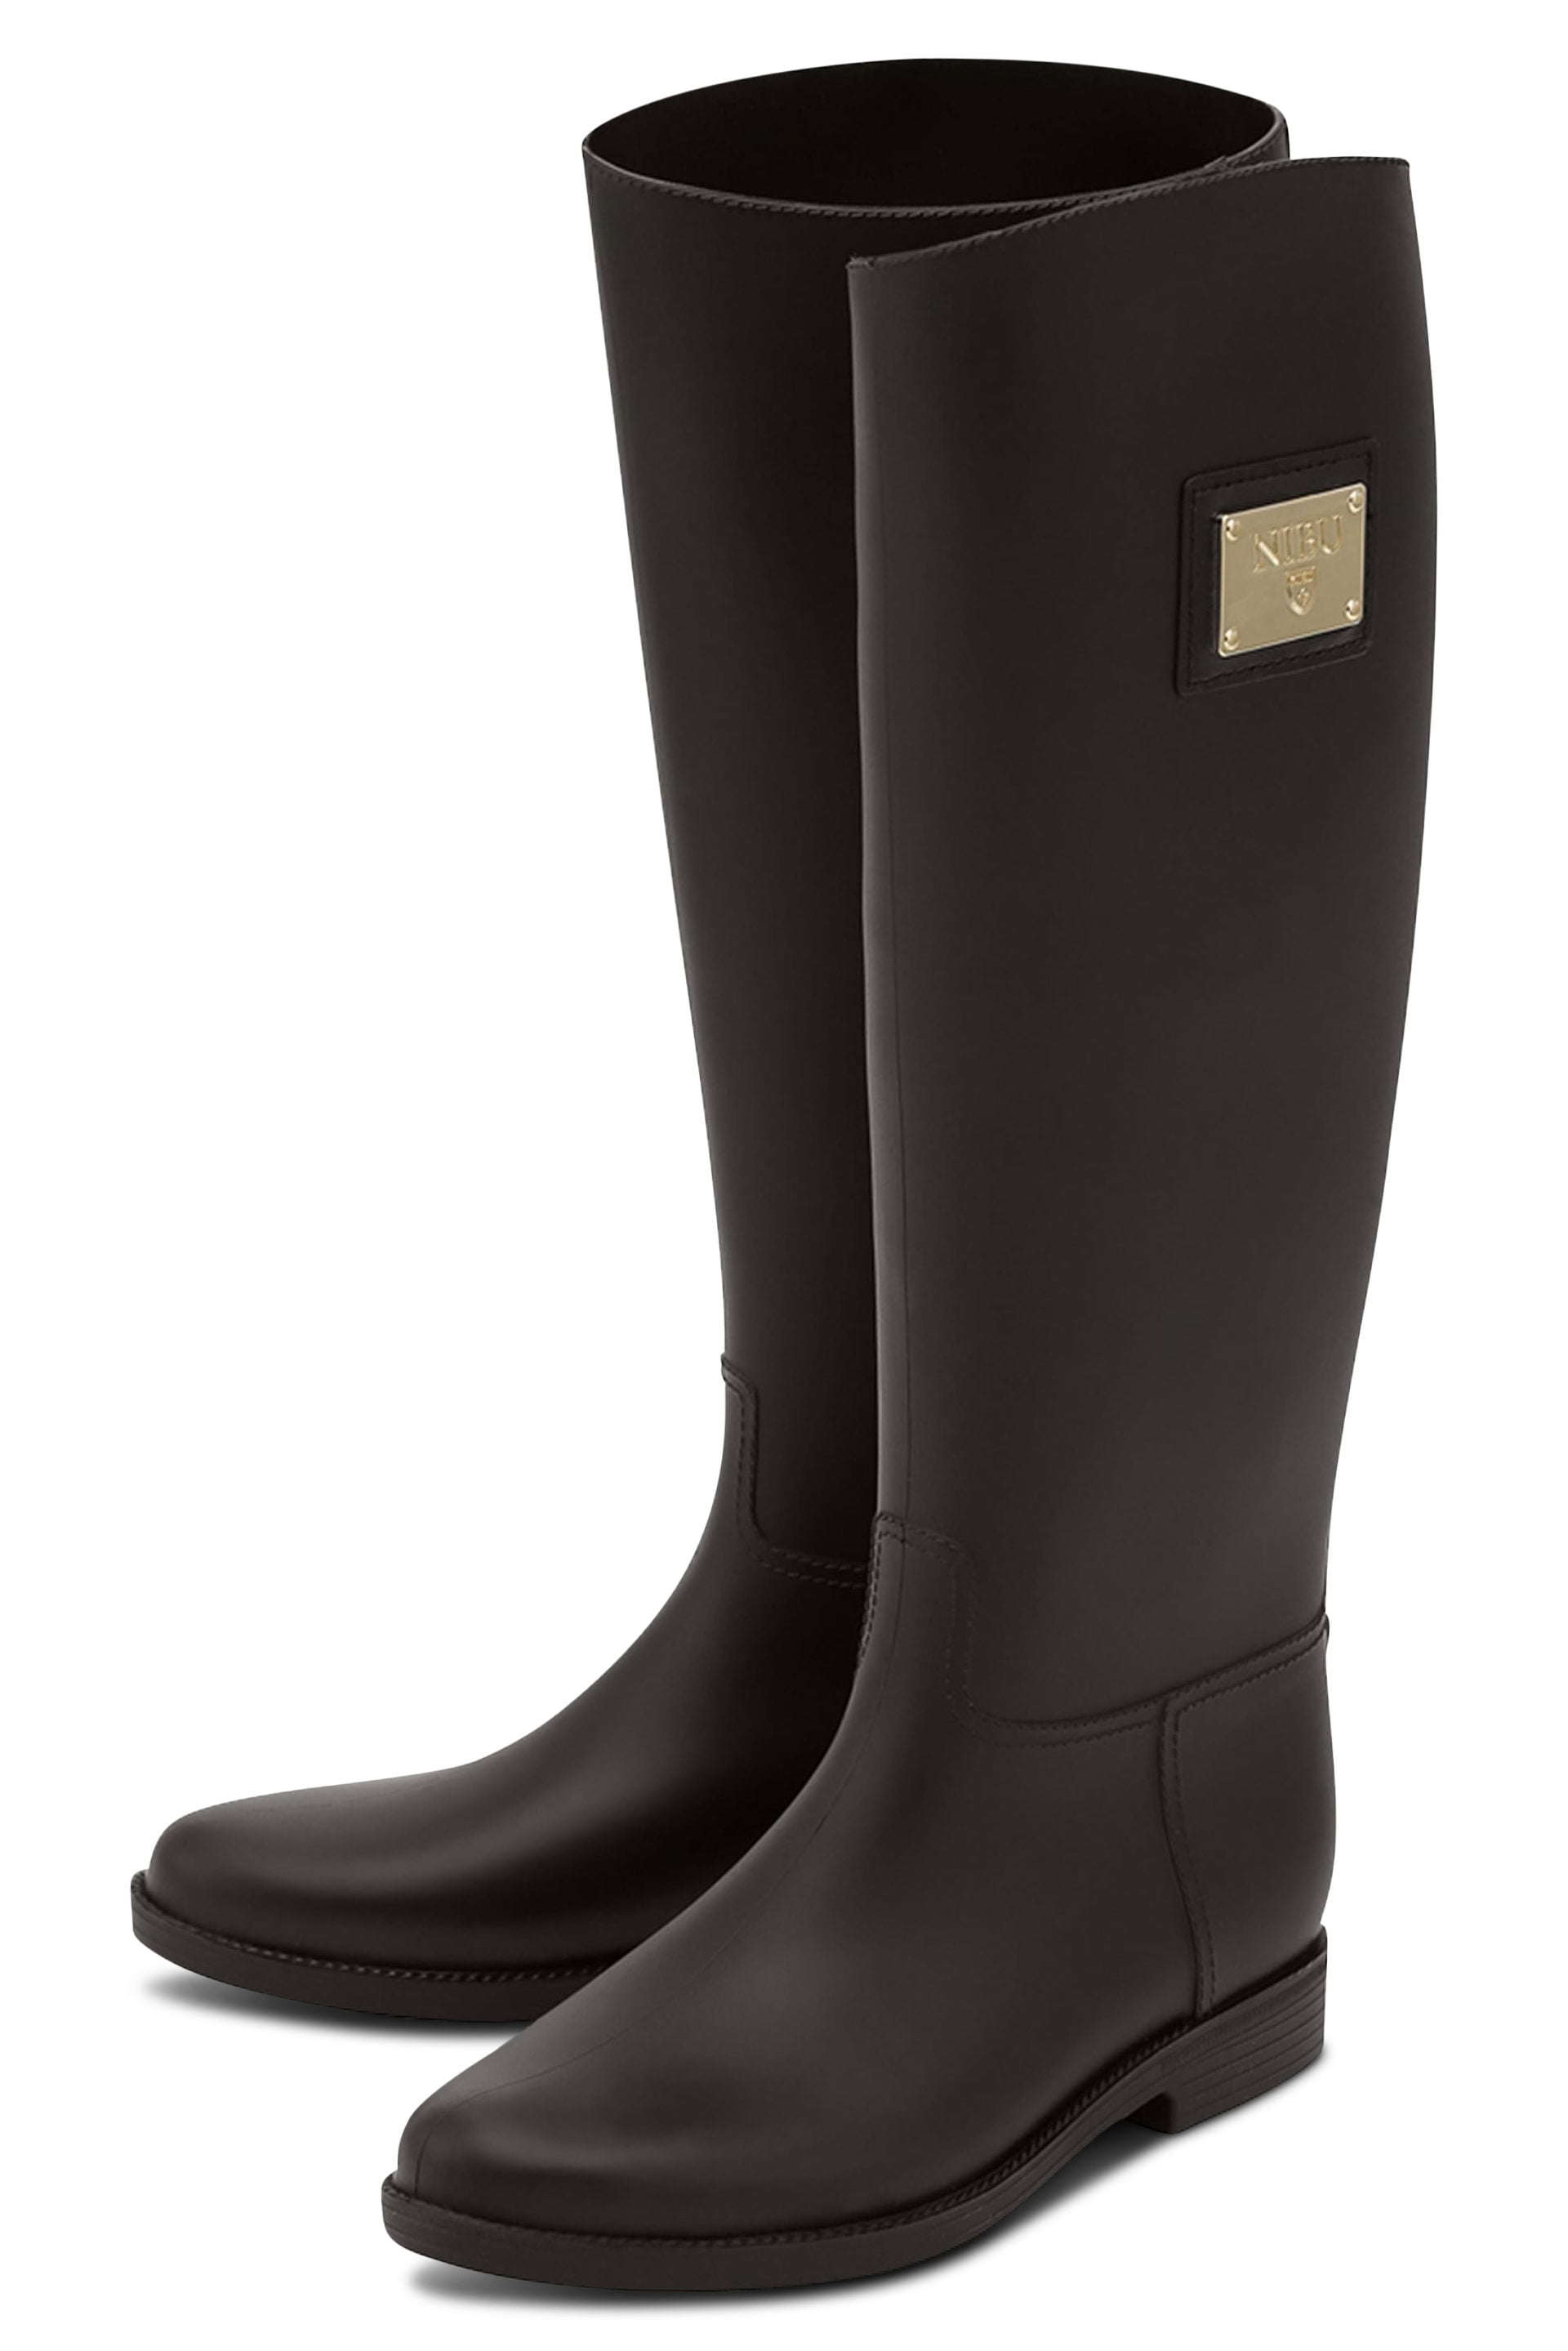 Brown rainboots with gold-colour logo